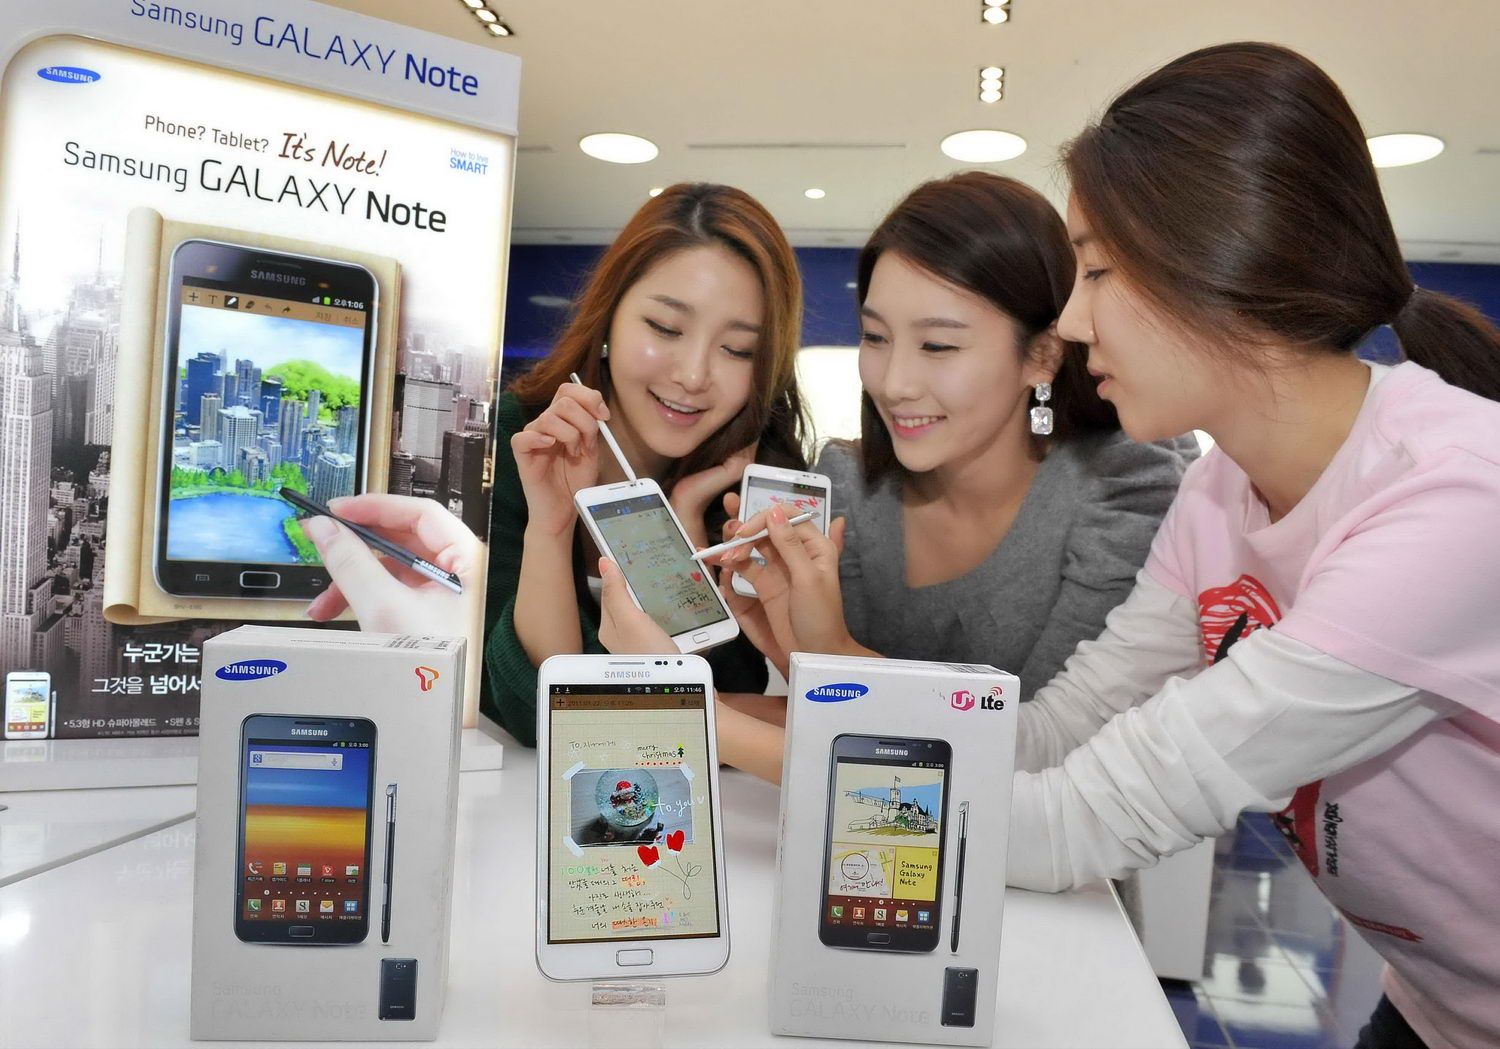 marketing plan of samsung galaxy The plan for the galaxy so is that samsung would like to engage in more business to consumer marketing to create more of a demand for its flagship product than has.